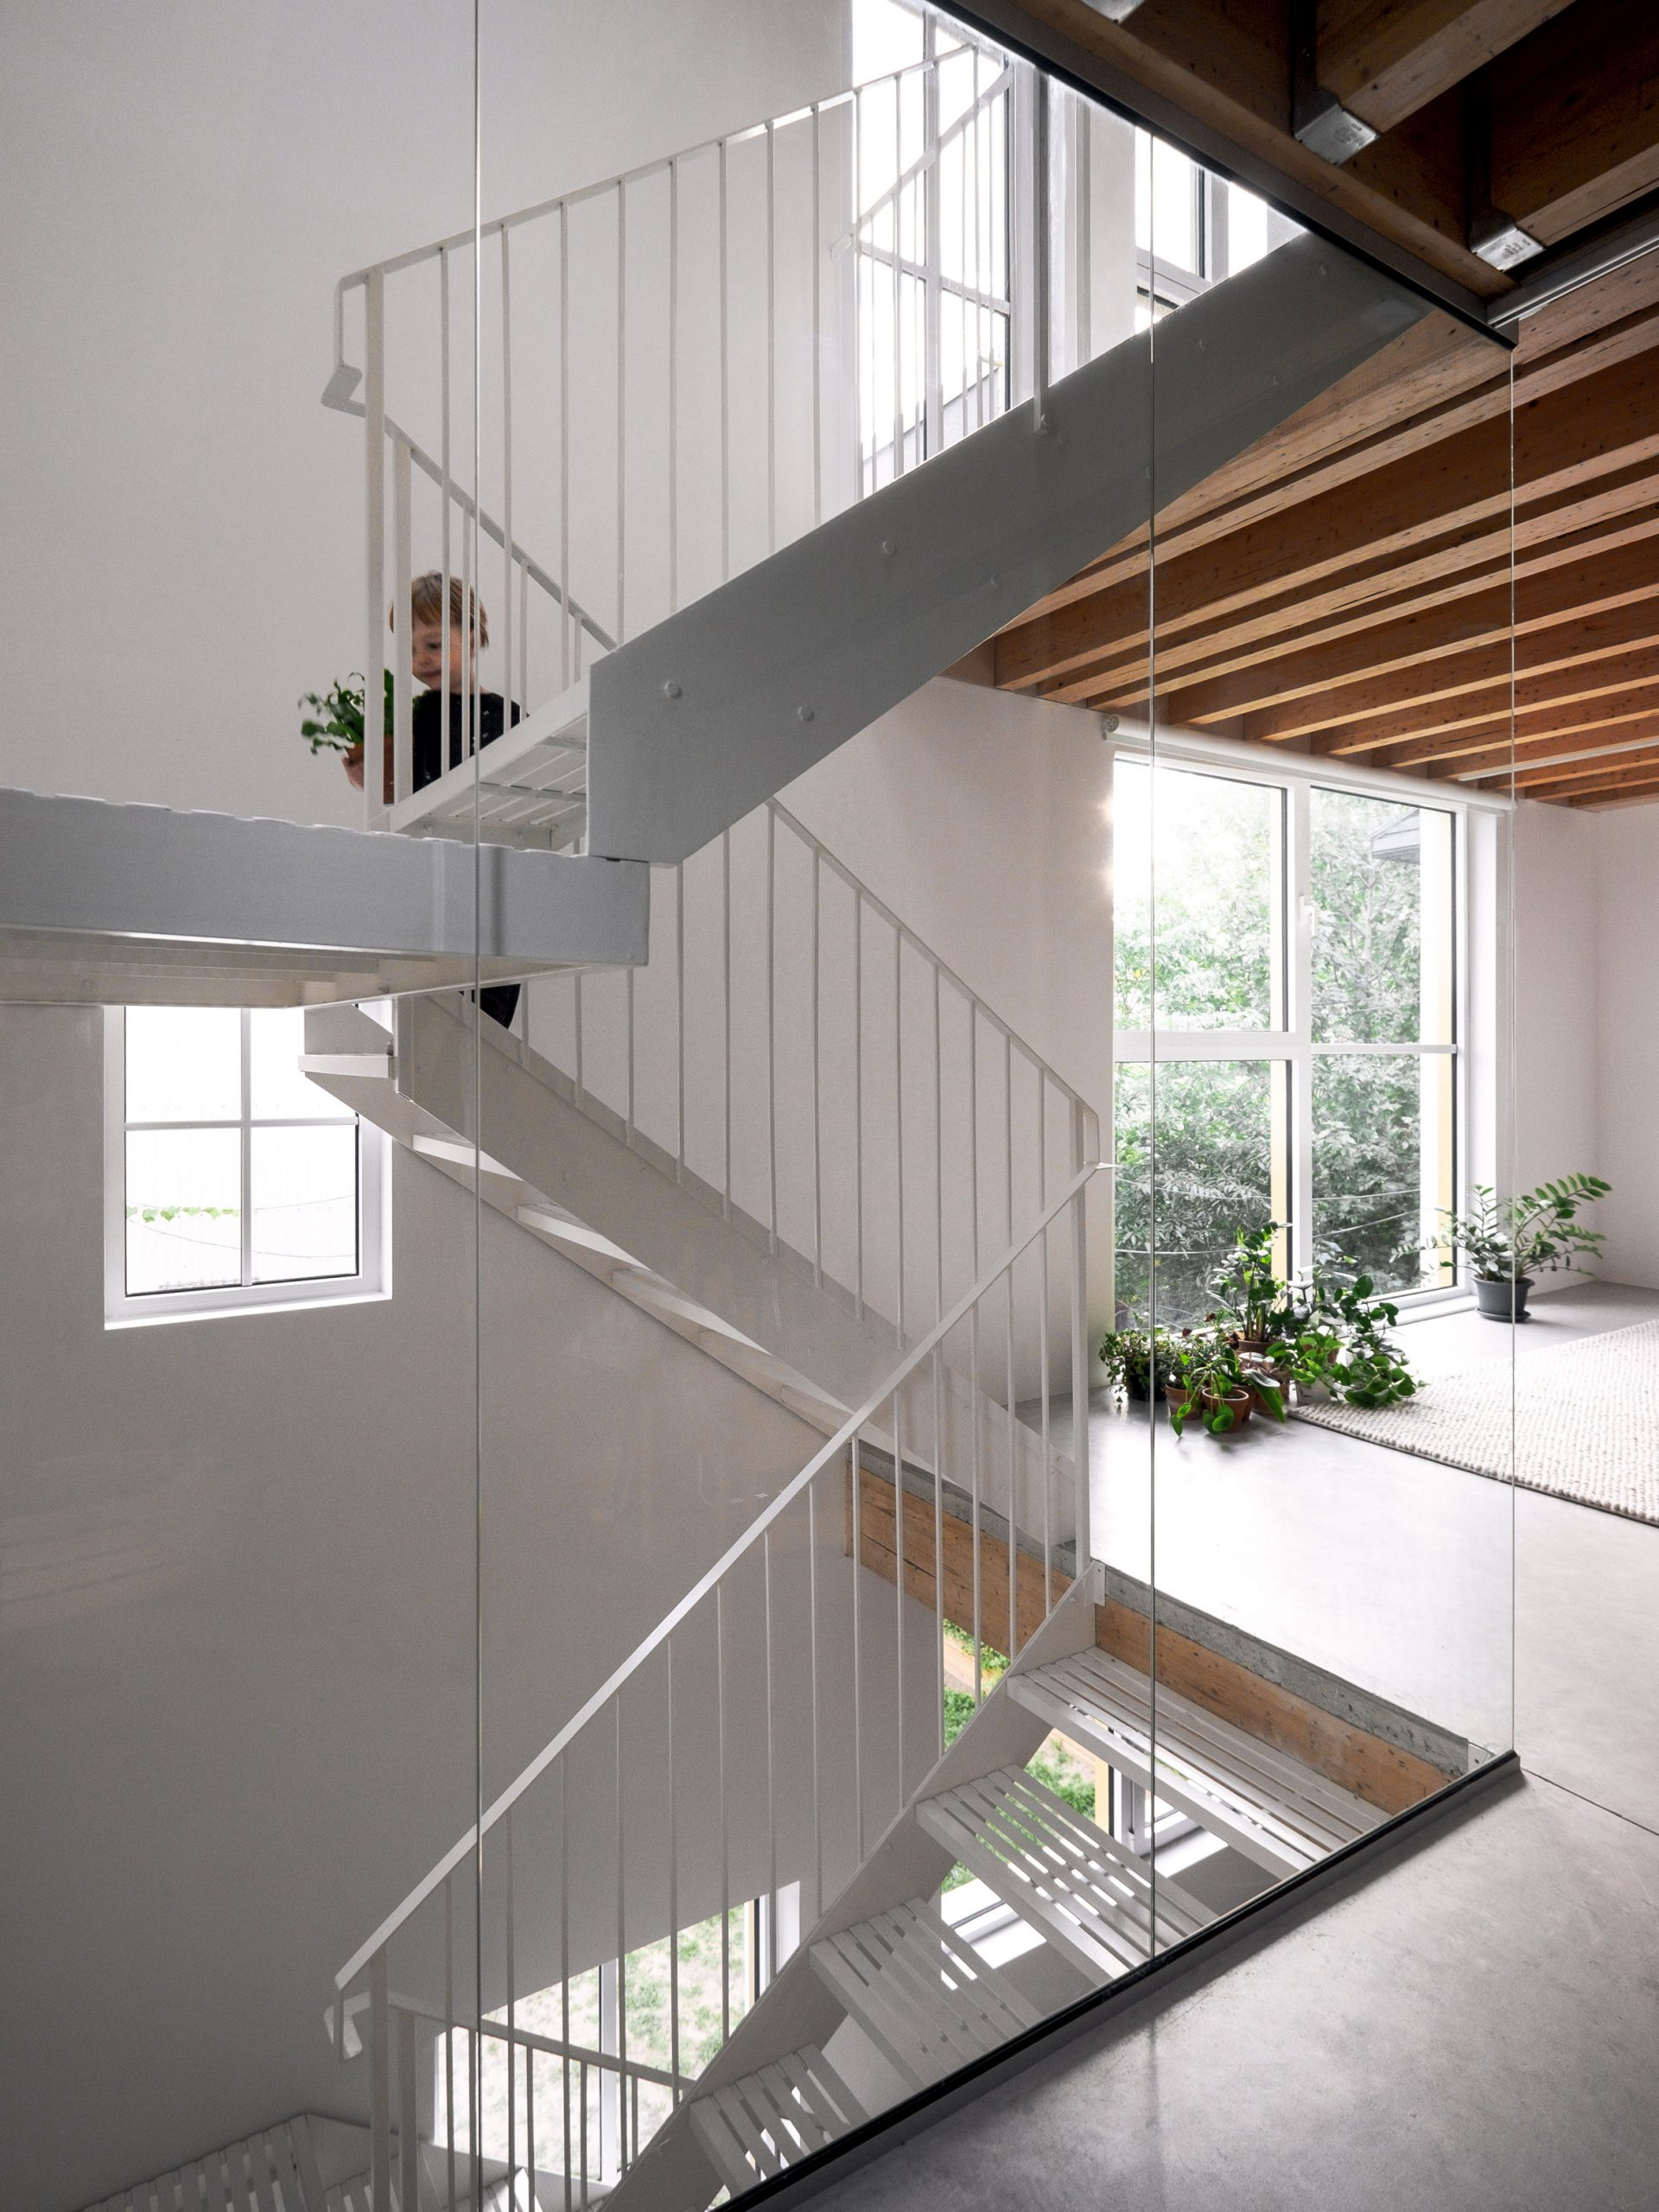 Staircase at NMBDH by Jean Verville in Montreal